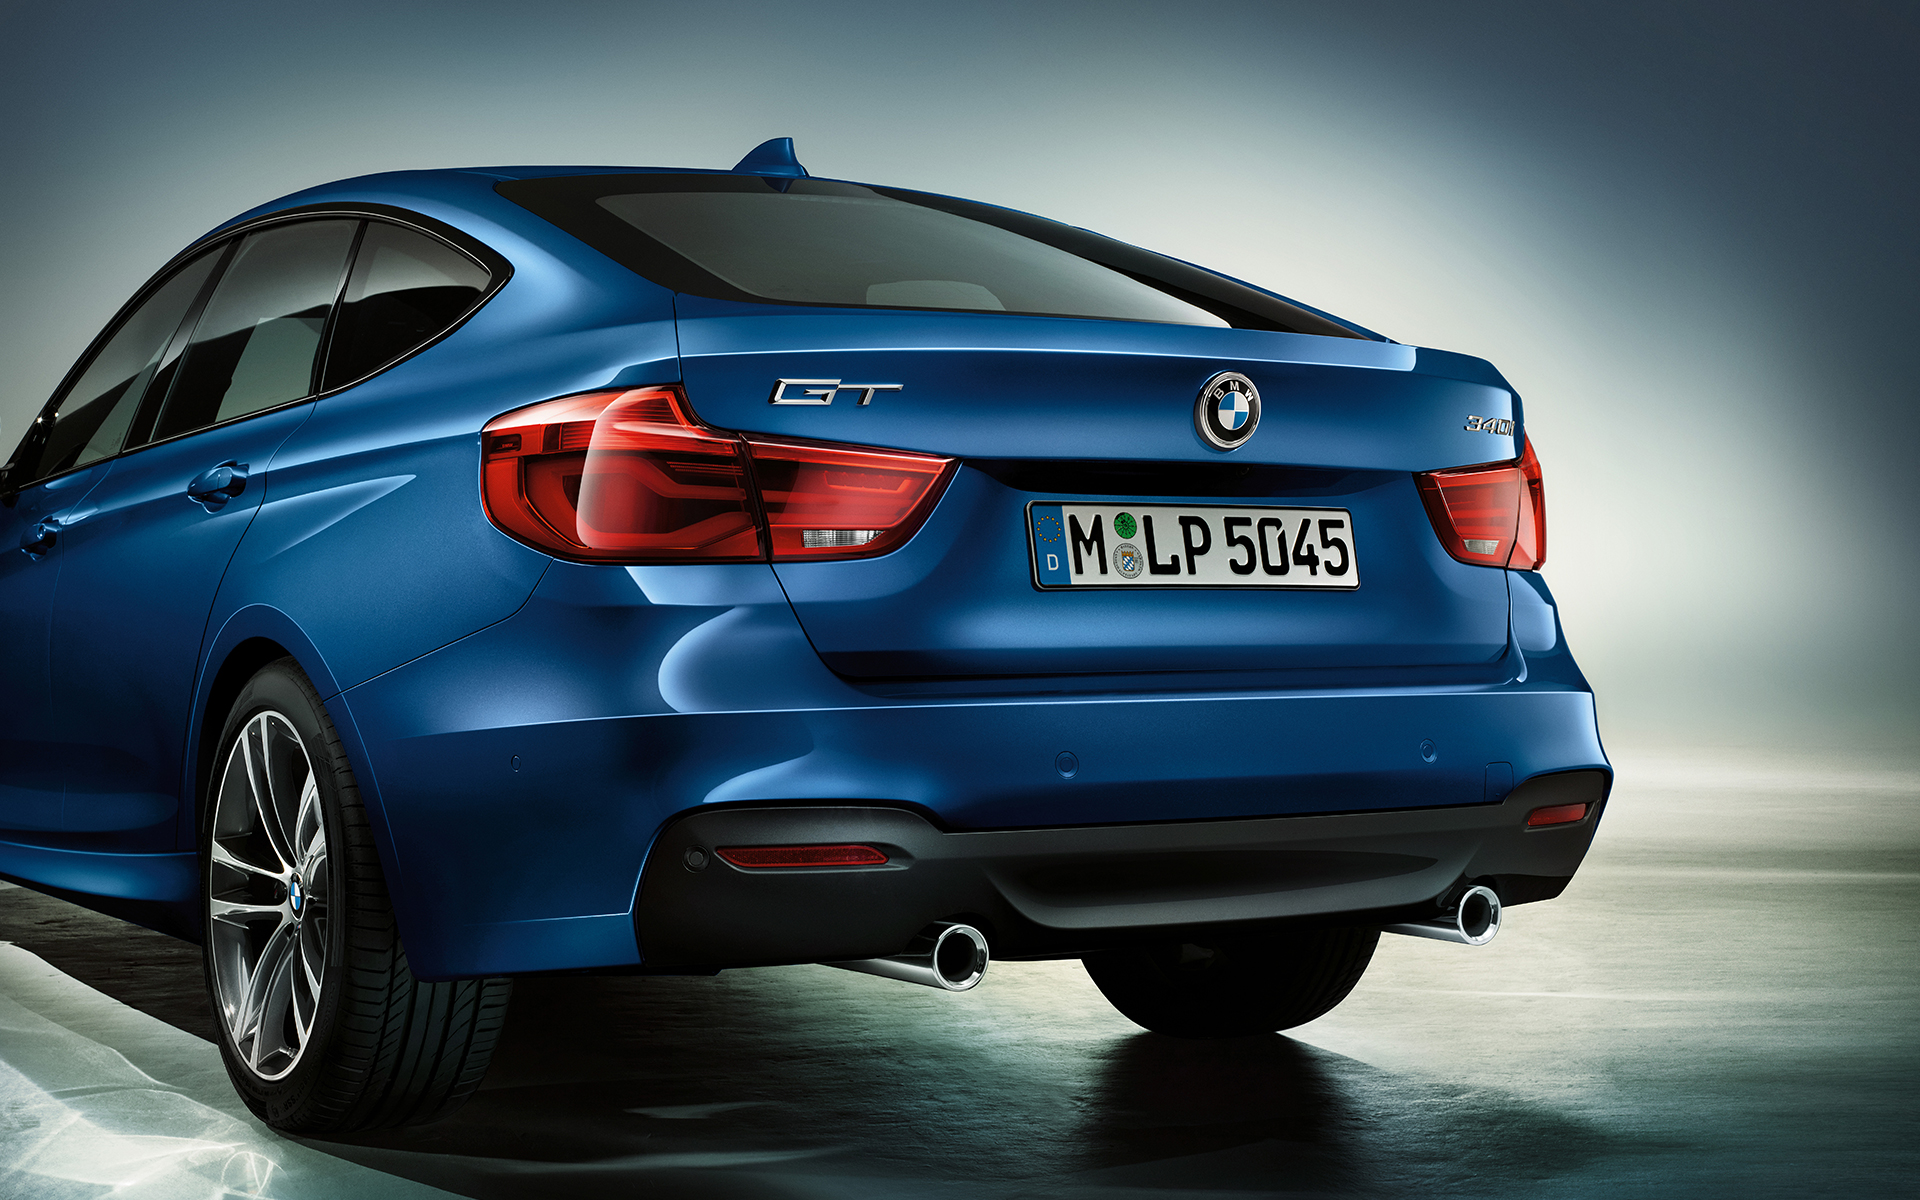 Wallpapers: 2017 BMW 3 Series GT Facelift